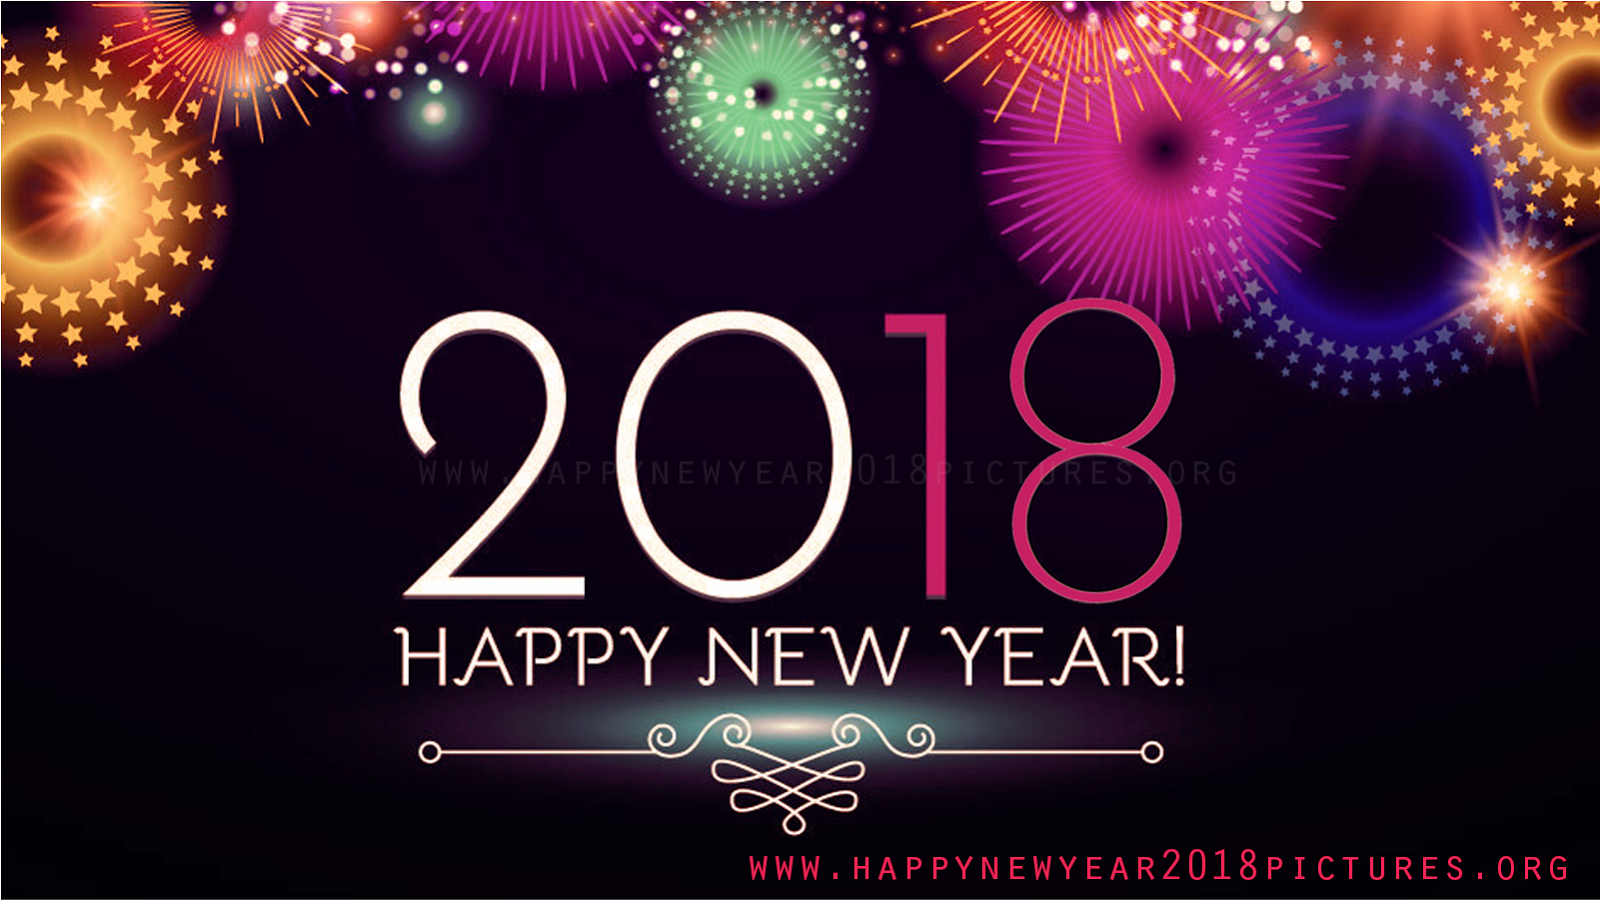 happy new year 2018 hd images photos wallpapers pictures 1600x900